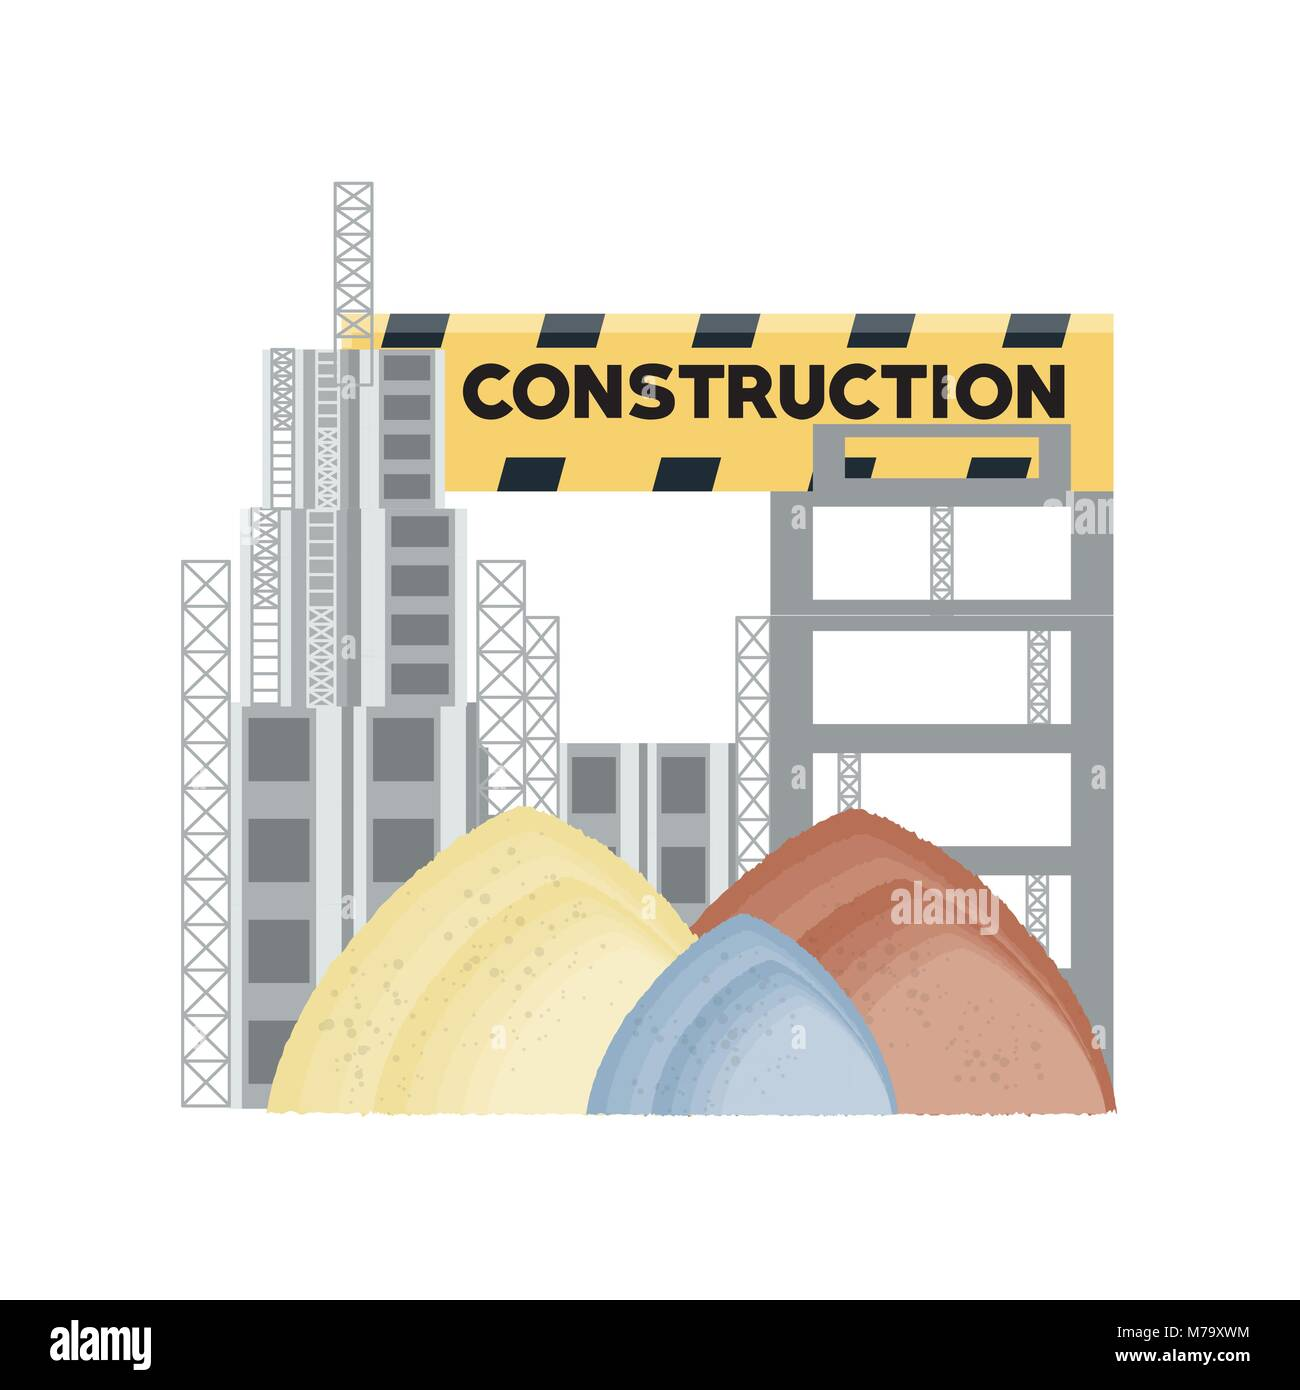 Construction zone with pile of sands over white background, colorful design vector illustration - Stock Image